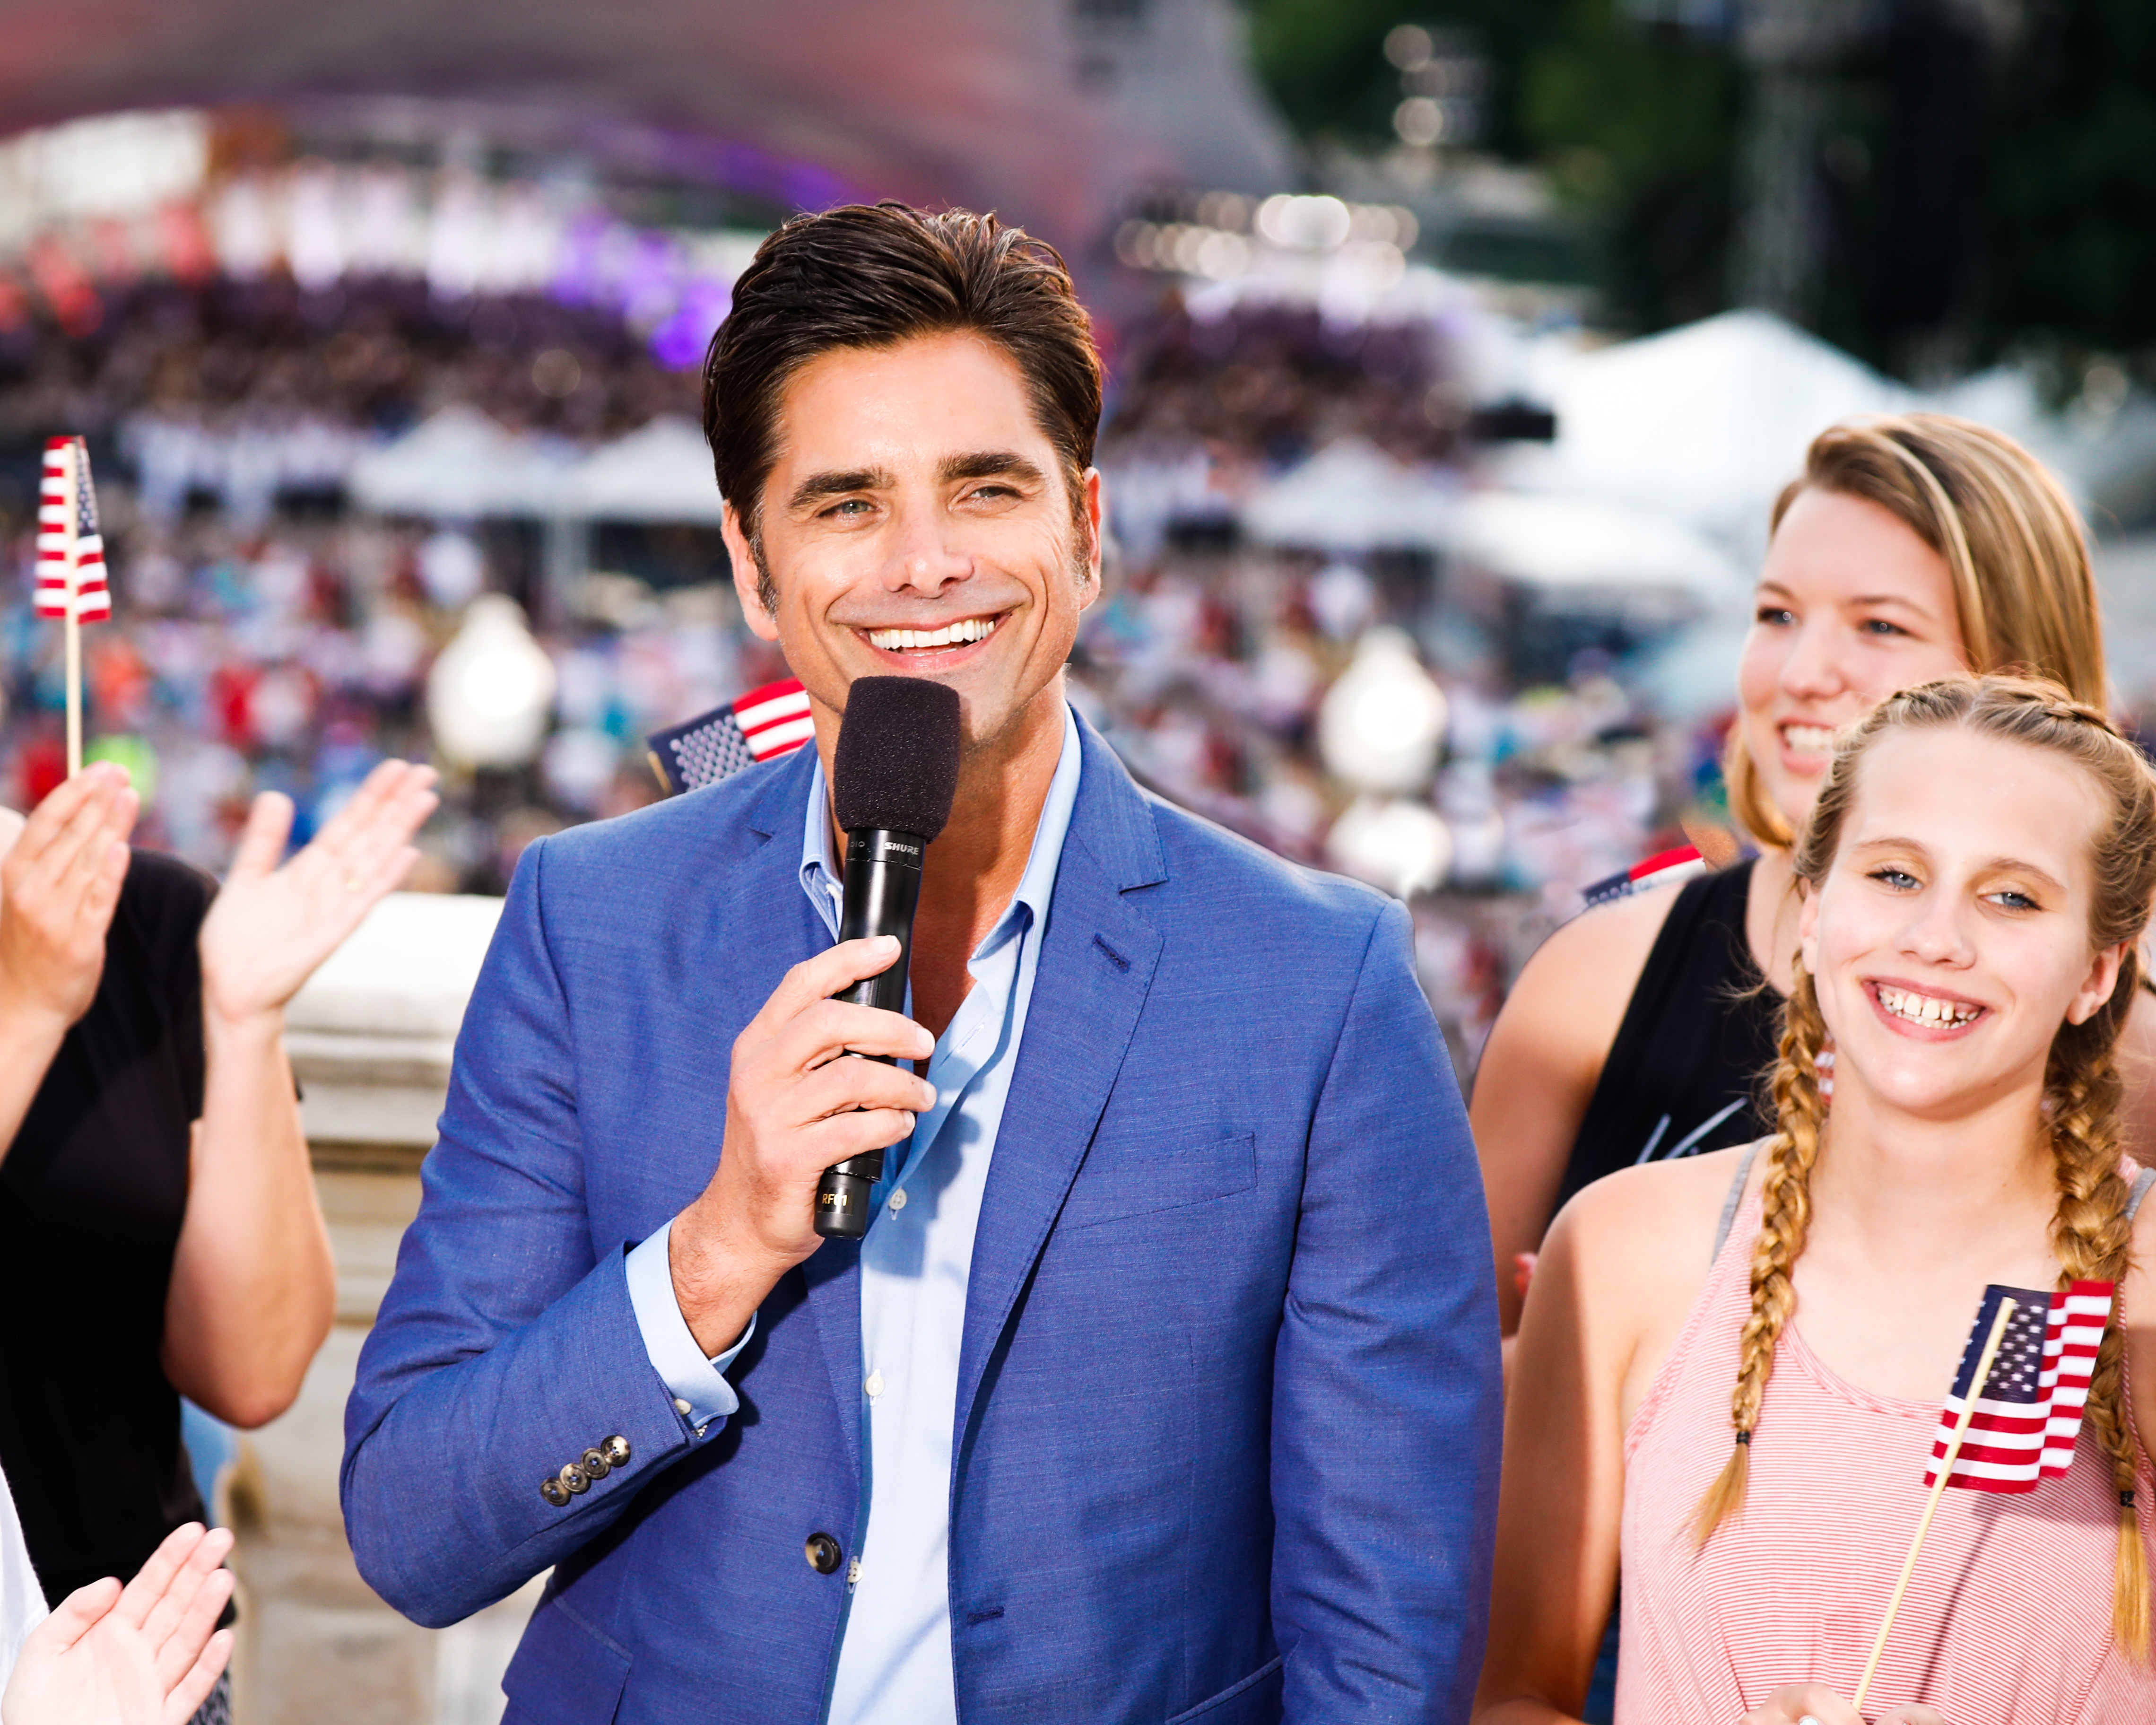 John Stamos poses with young performers